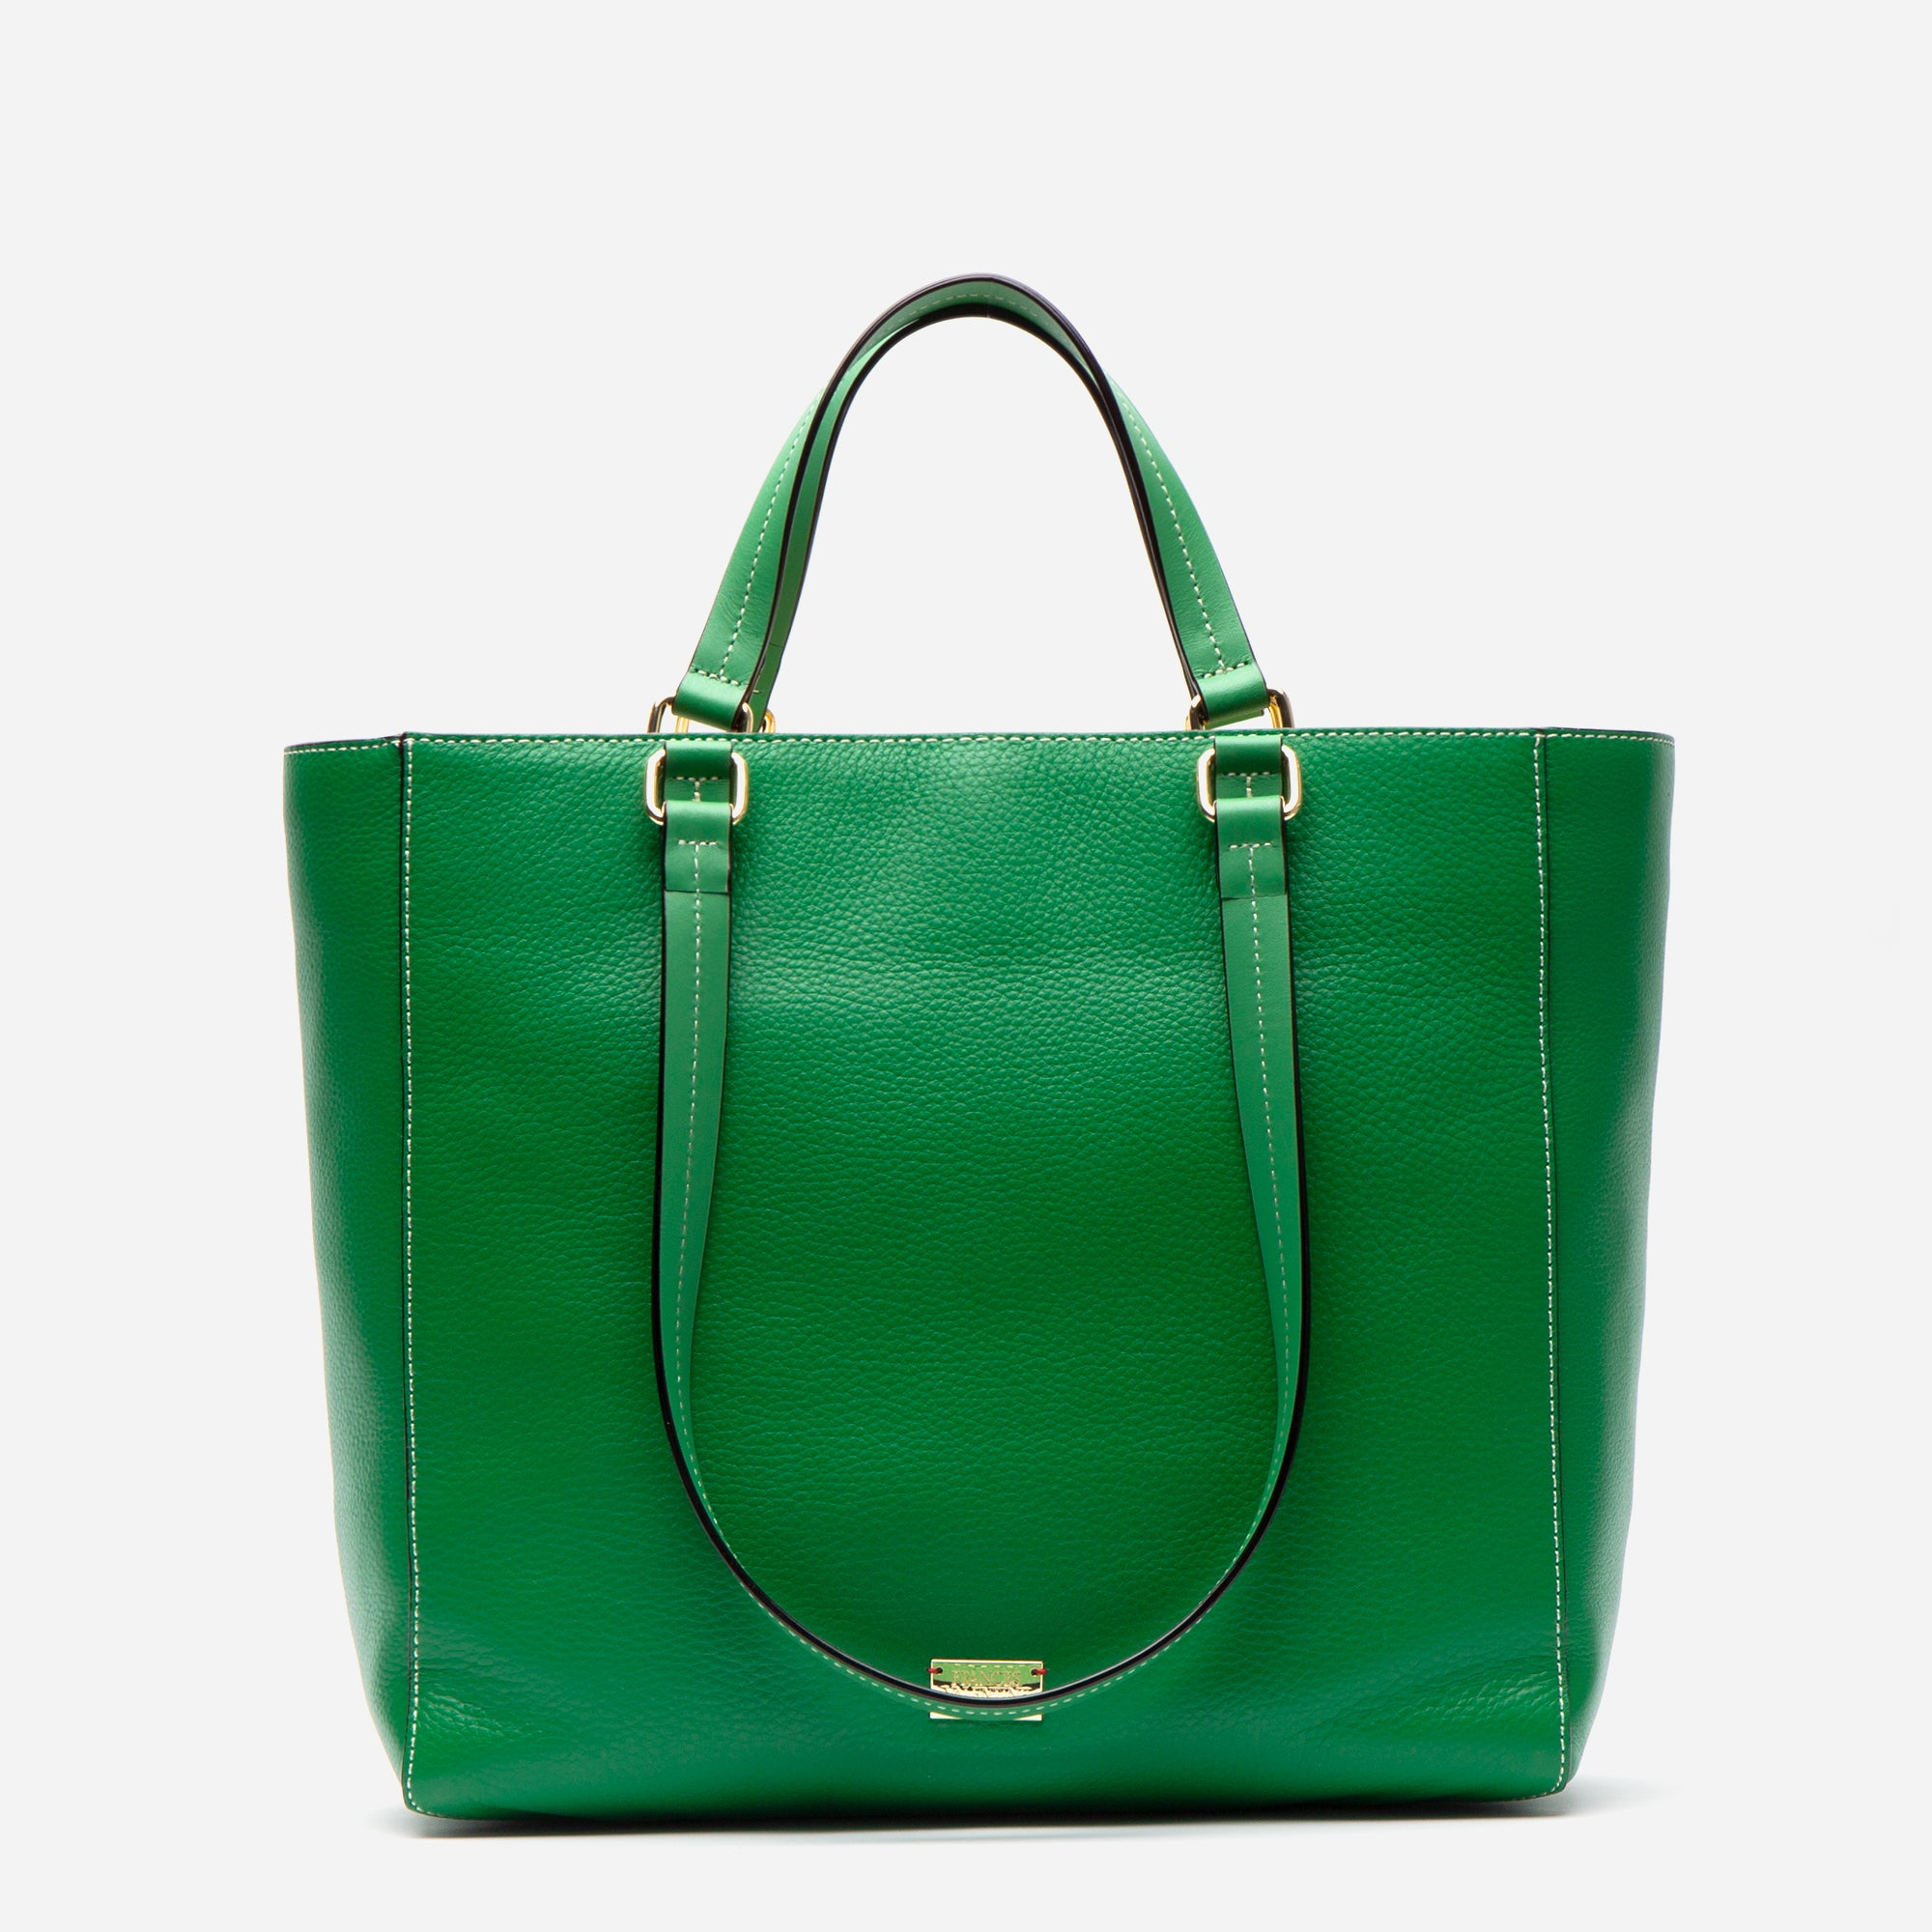 Margie Tote Tumbled Leather Green - Frances Valentine